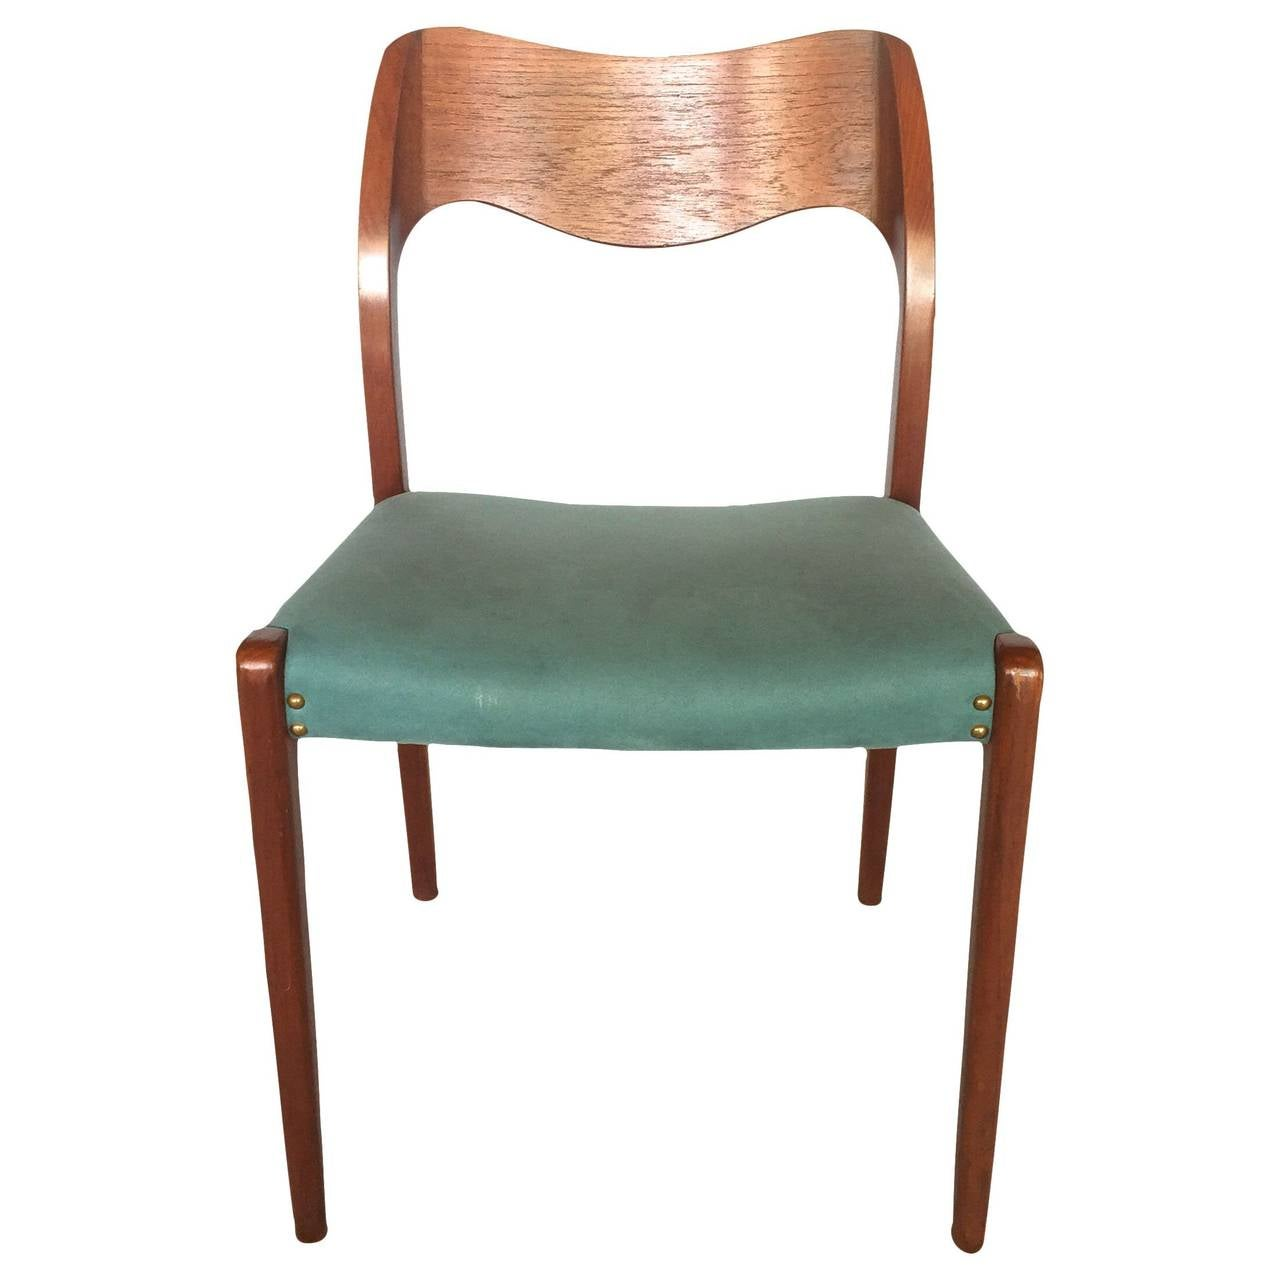 Set of 6 turquoise jl m ller teak dining chairs at 1stdibs - Turquoise upholstered dining chair ...